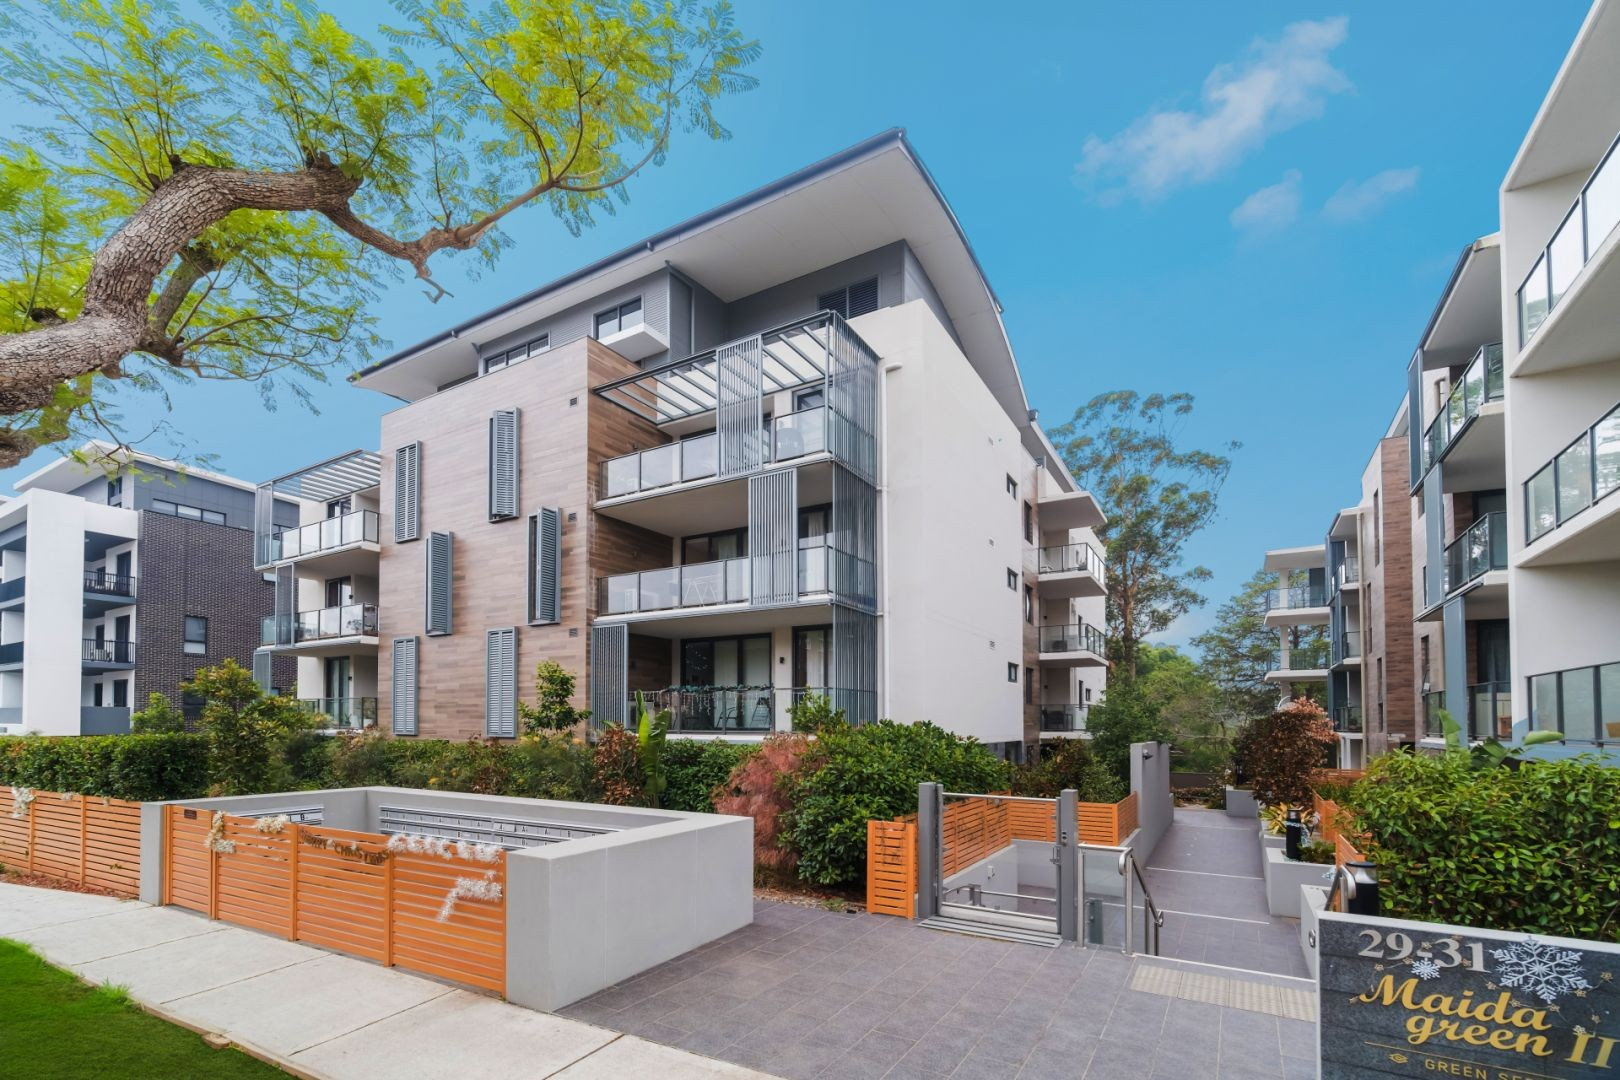 Property for sale B104/27-31 Forest Grove Epping NSW 2121